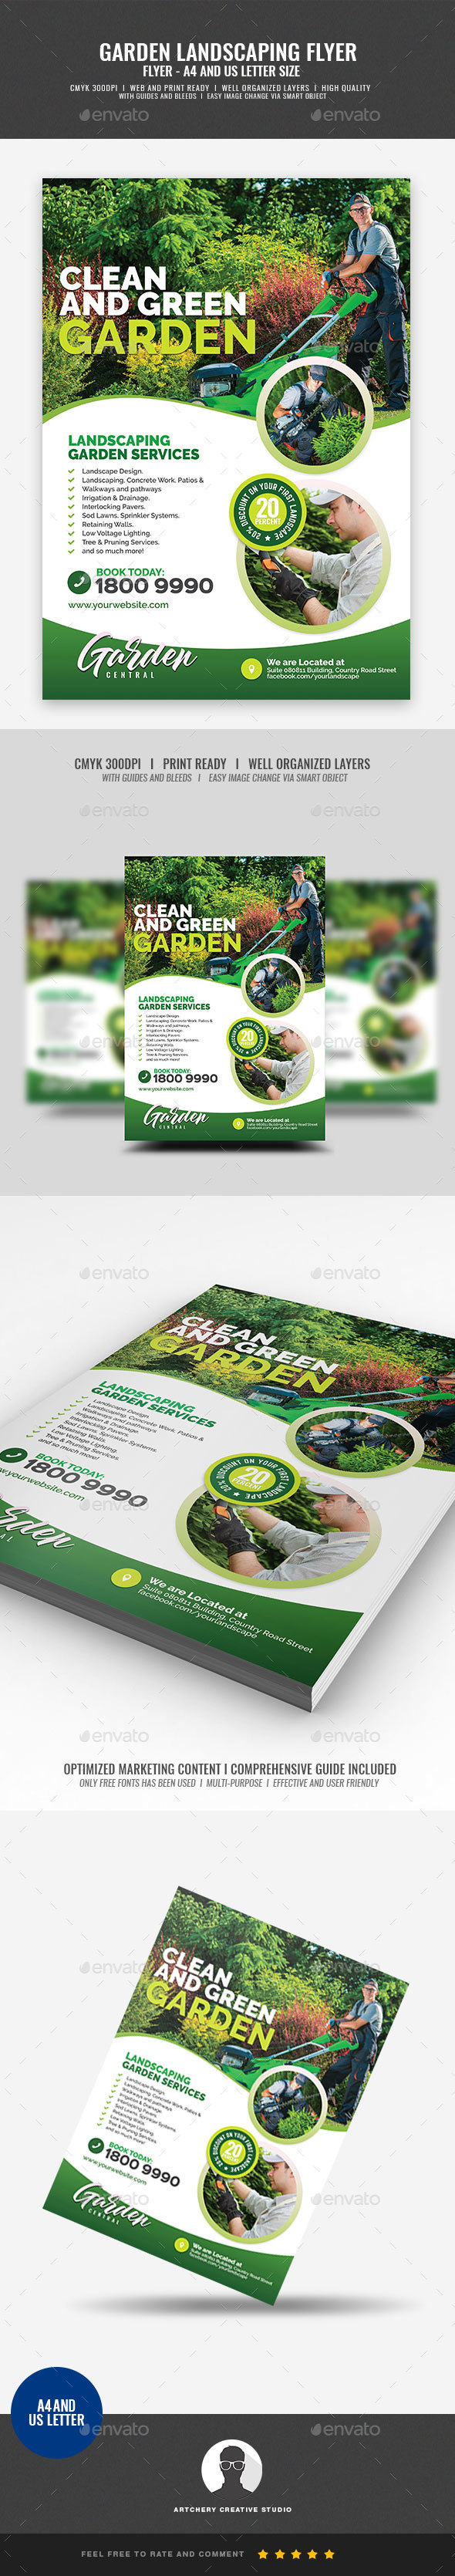 Garden Landscaping and Lawn Design Flyer - Corporate Flyers